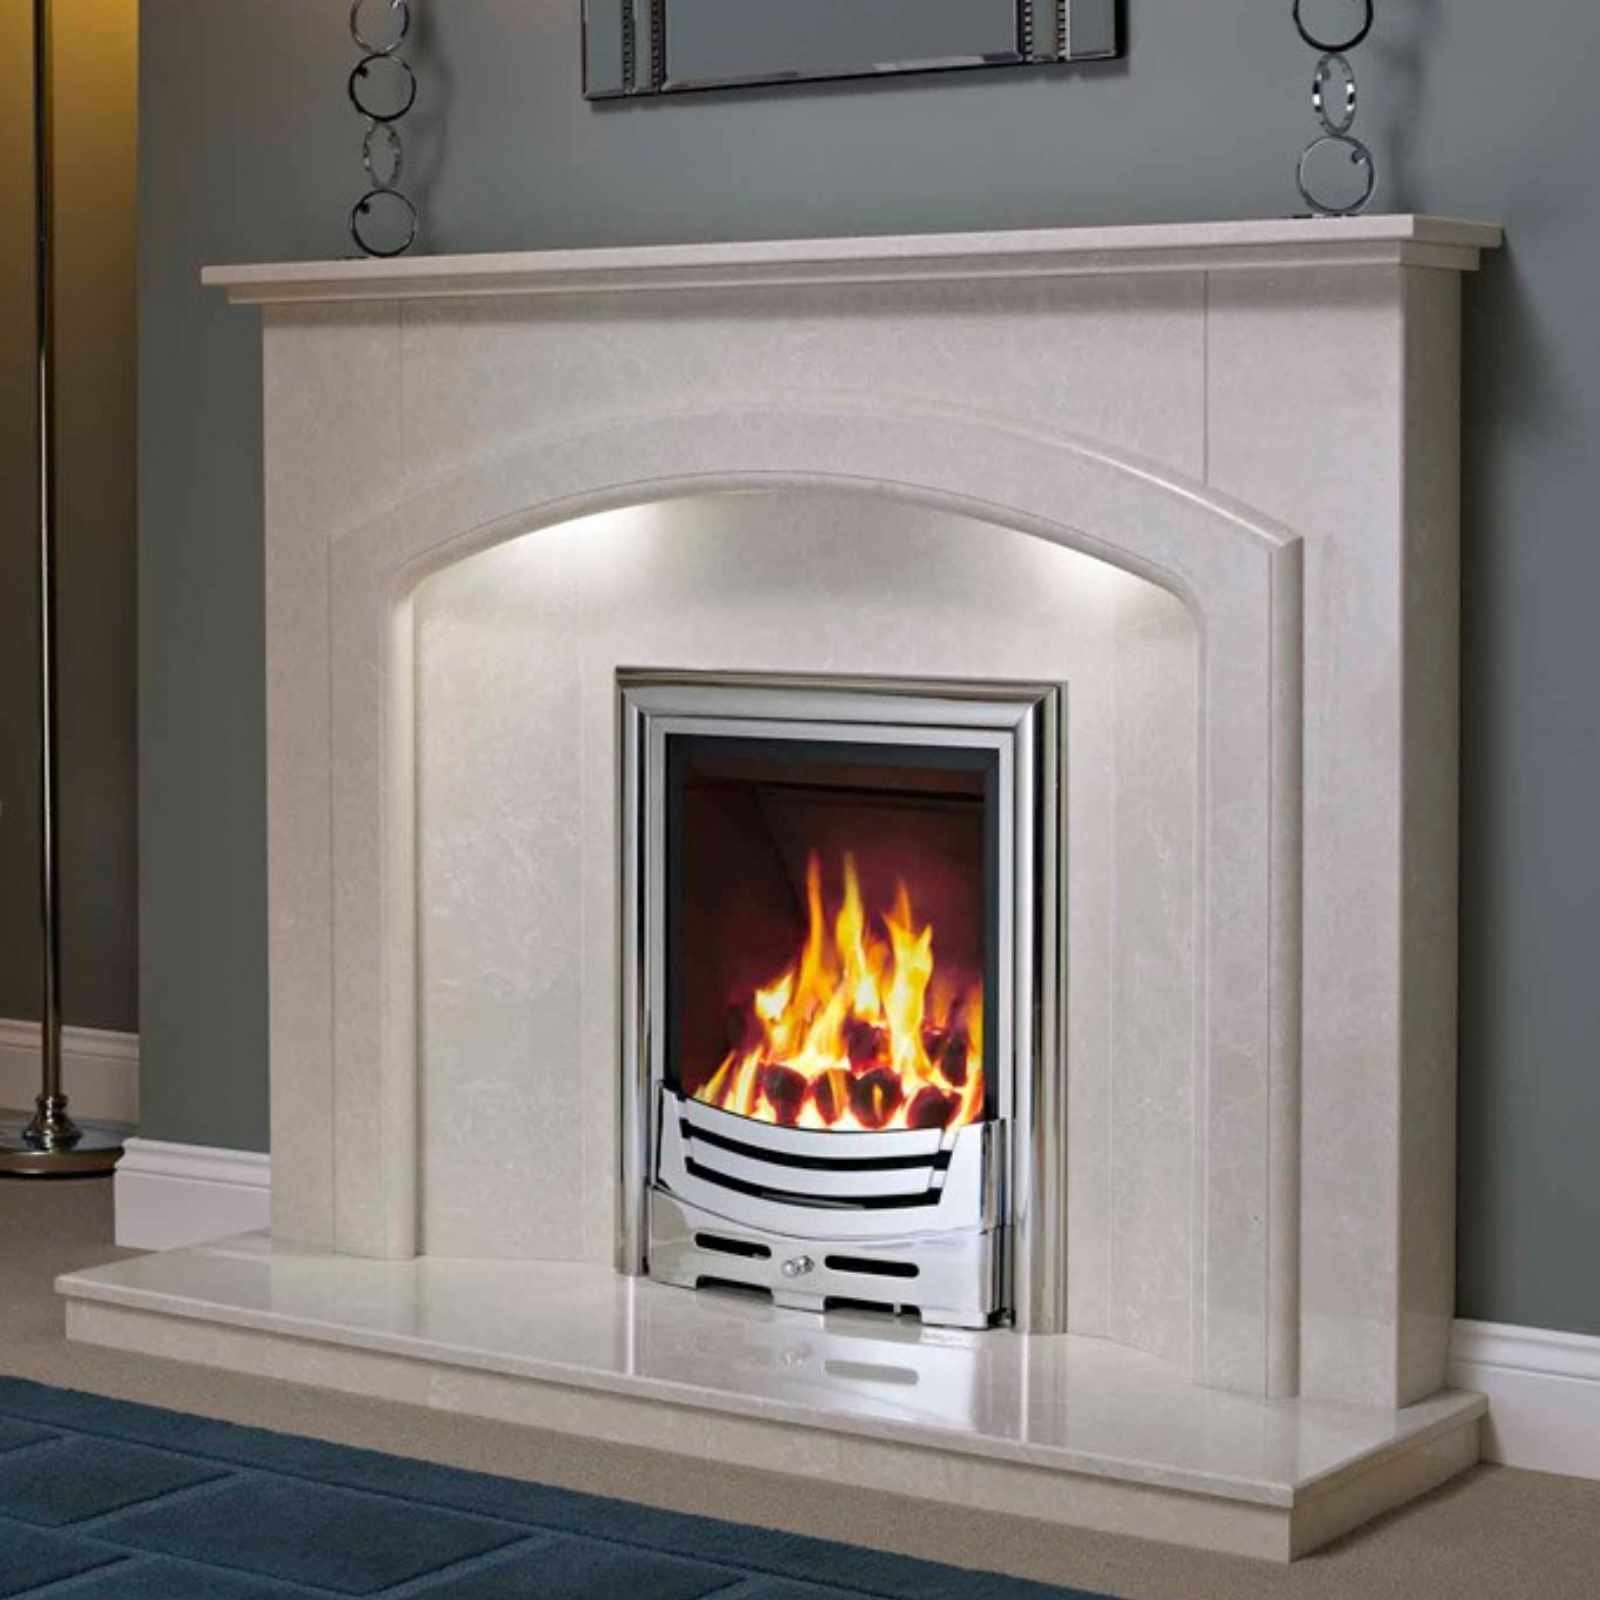 Luxury design be modern andorra 52 marble fireplace for Marble for fireplace surround